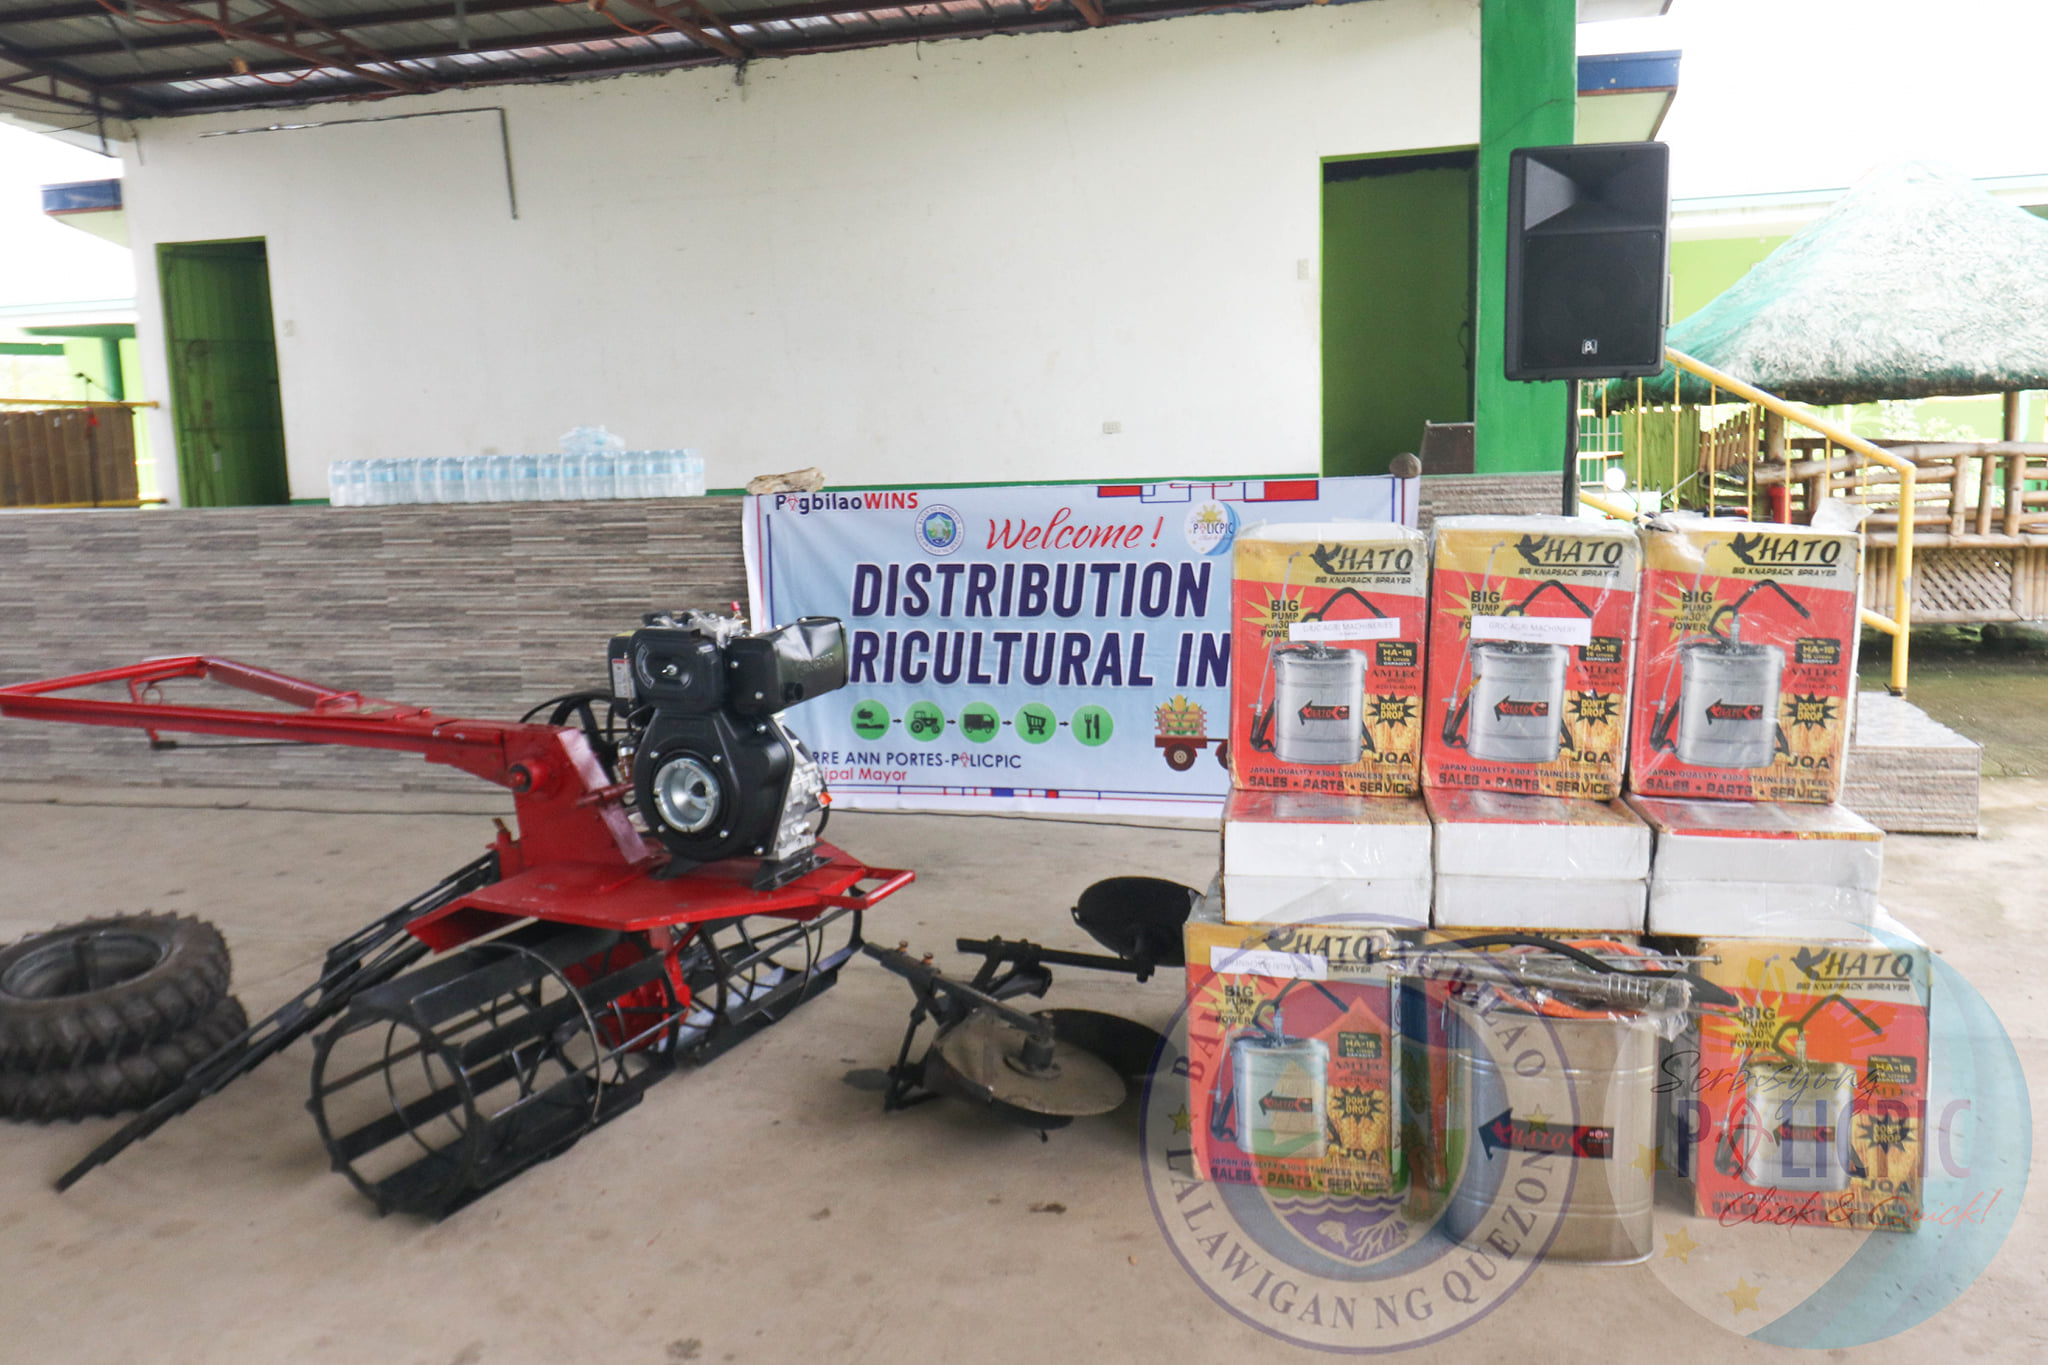 Distribution of 13 Units of Hand Tractors and 27 Units of Knapsack Sprayers